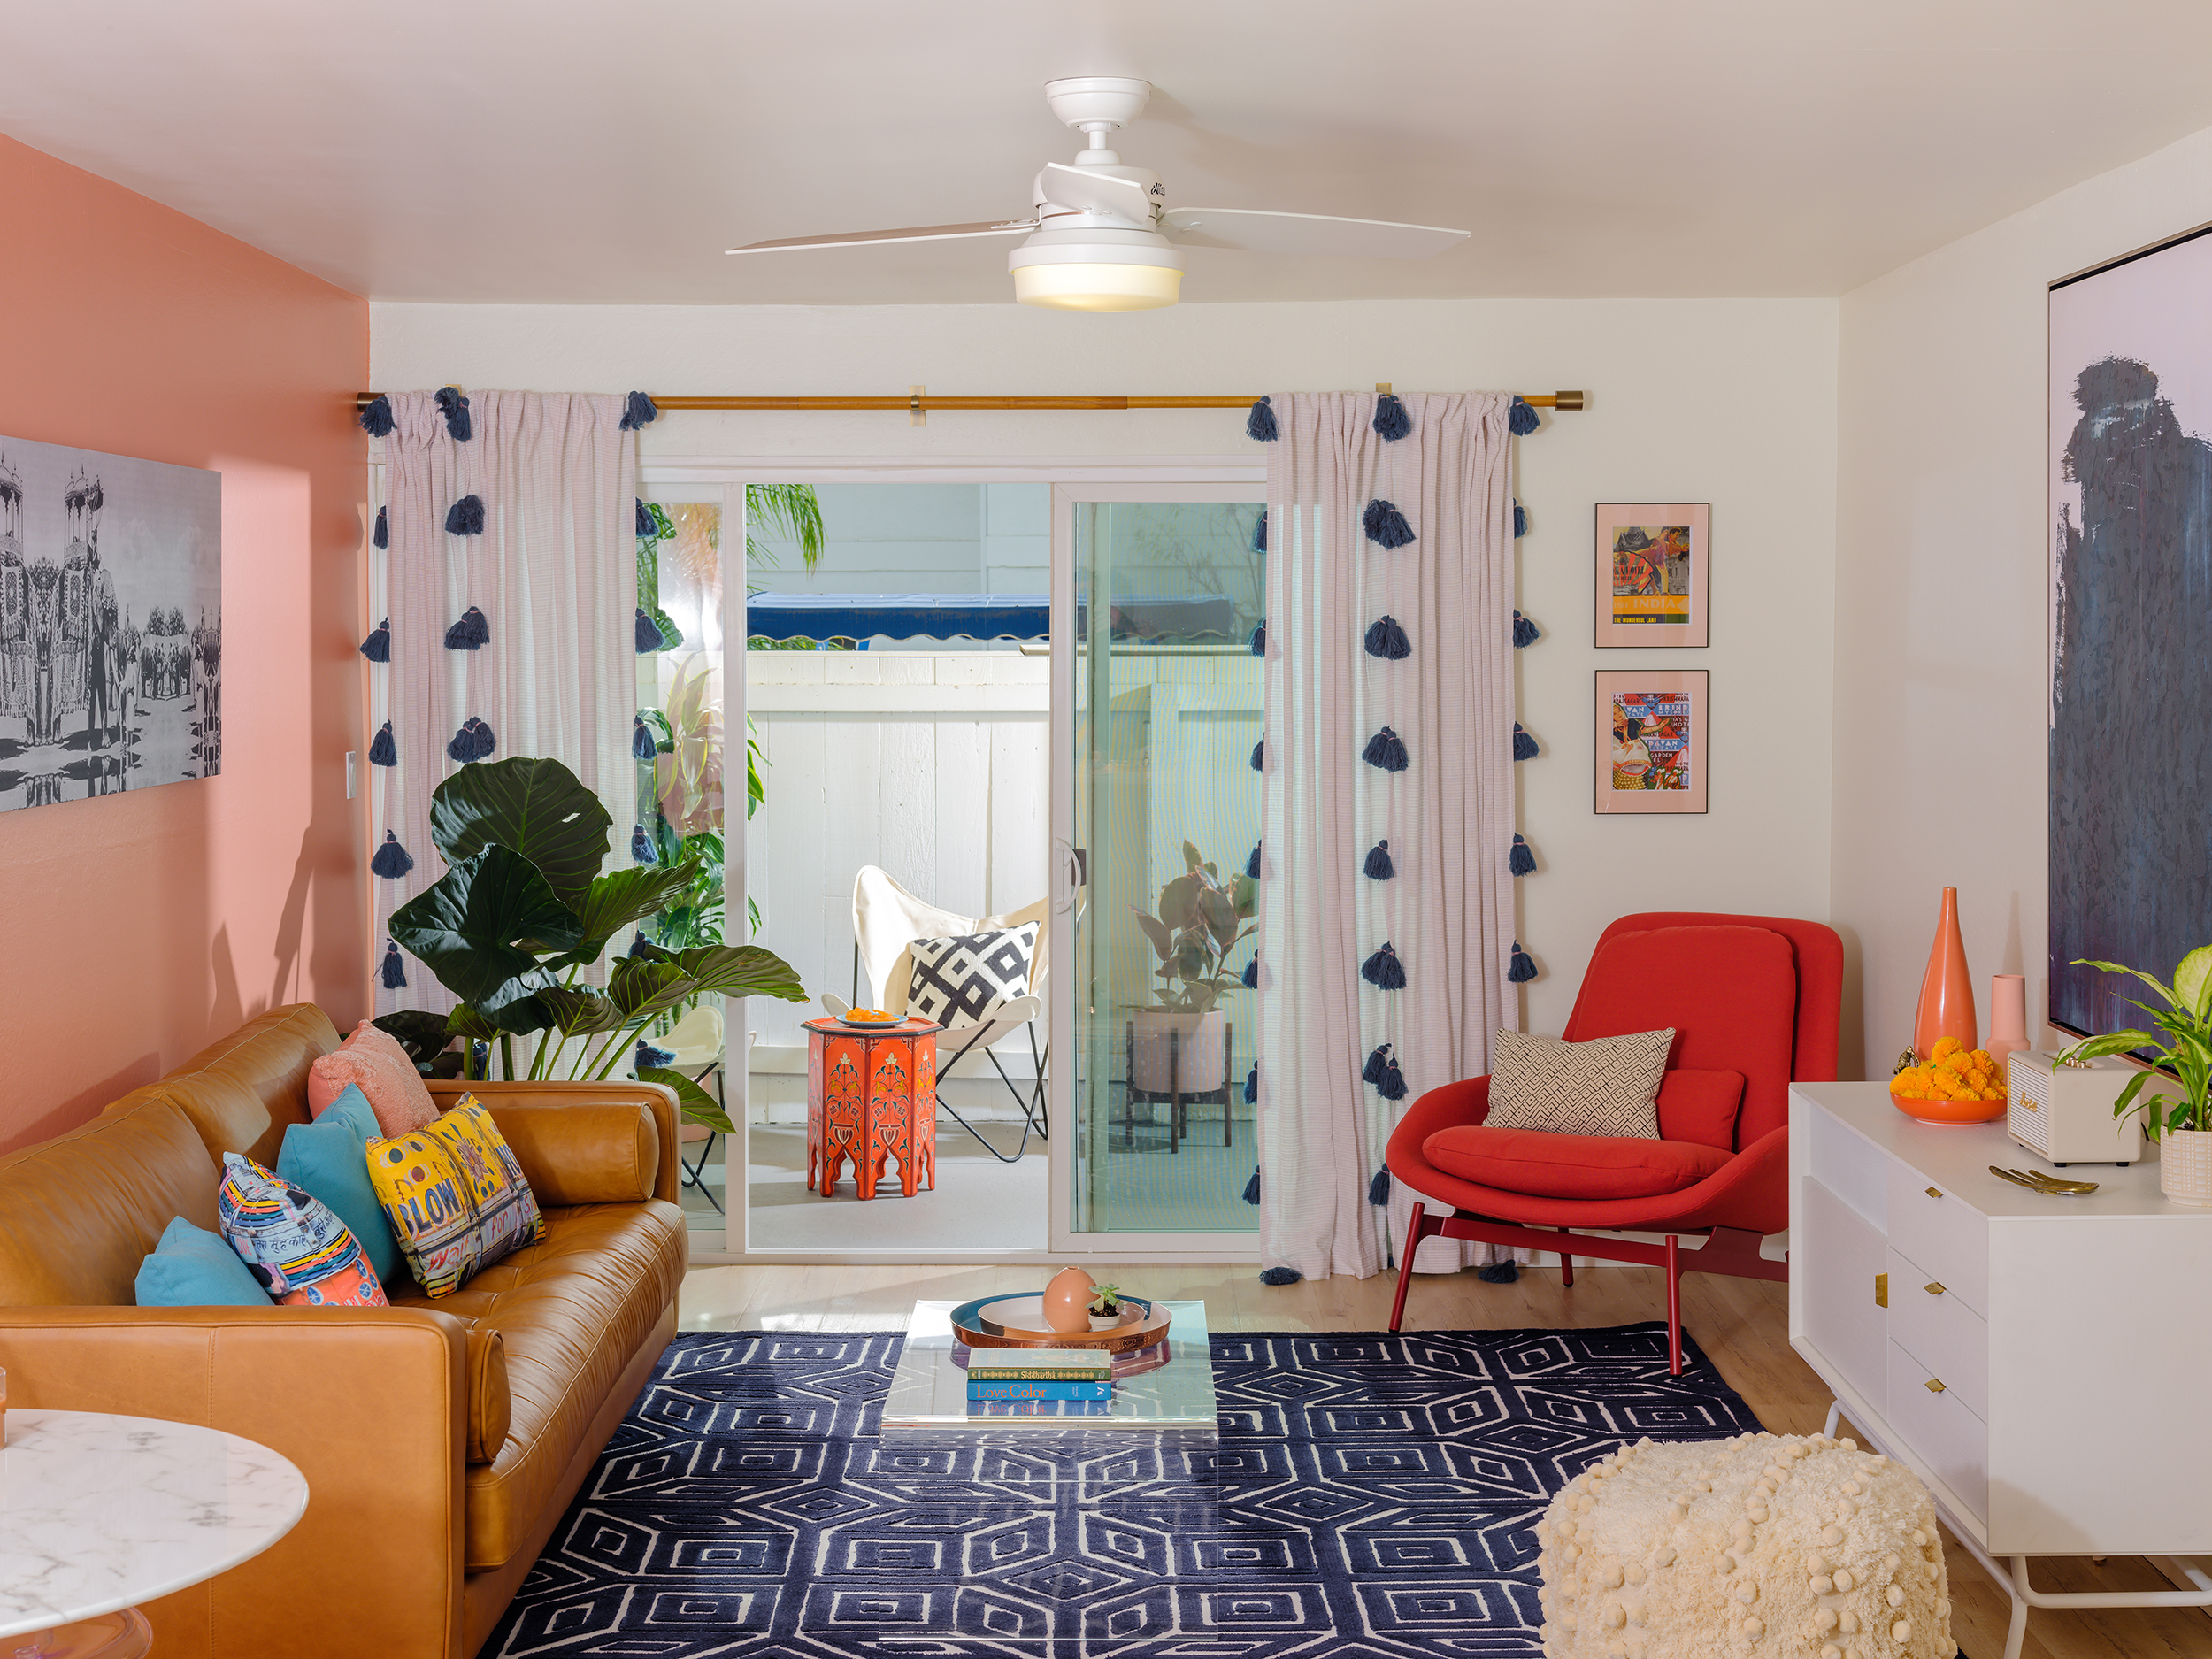 Where Bombay Royale meets Palm Springs Chic - Our model units embody fun and relaxation